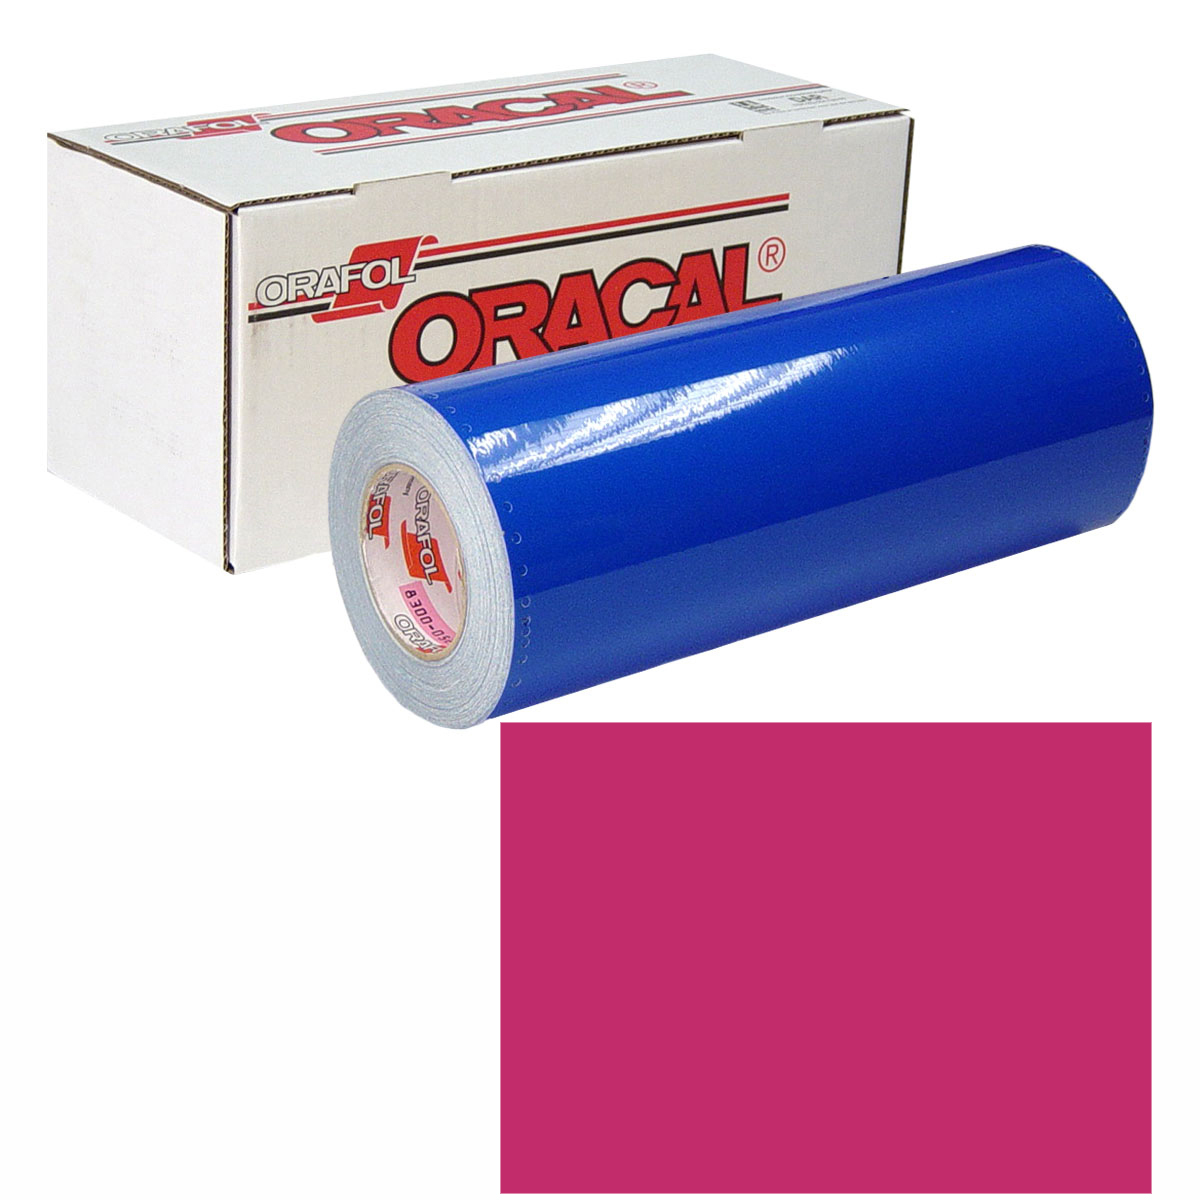 ORACAL 631 Unp 30In X 50Yd 041 Pink